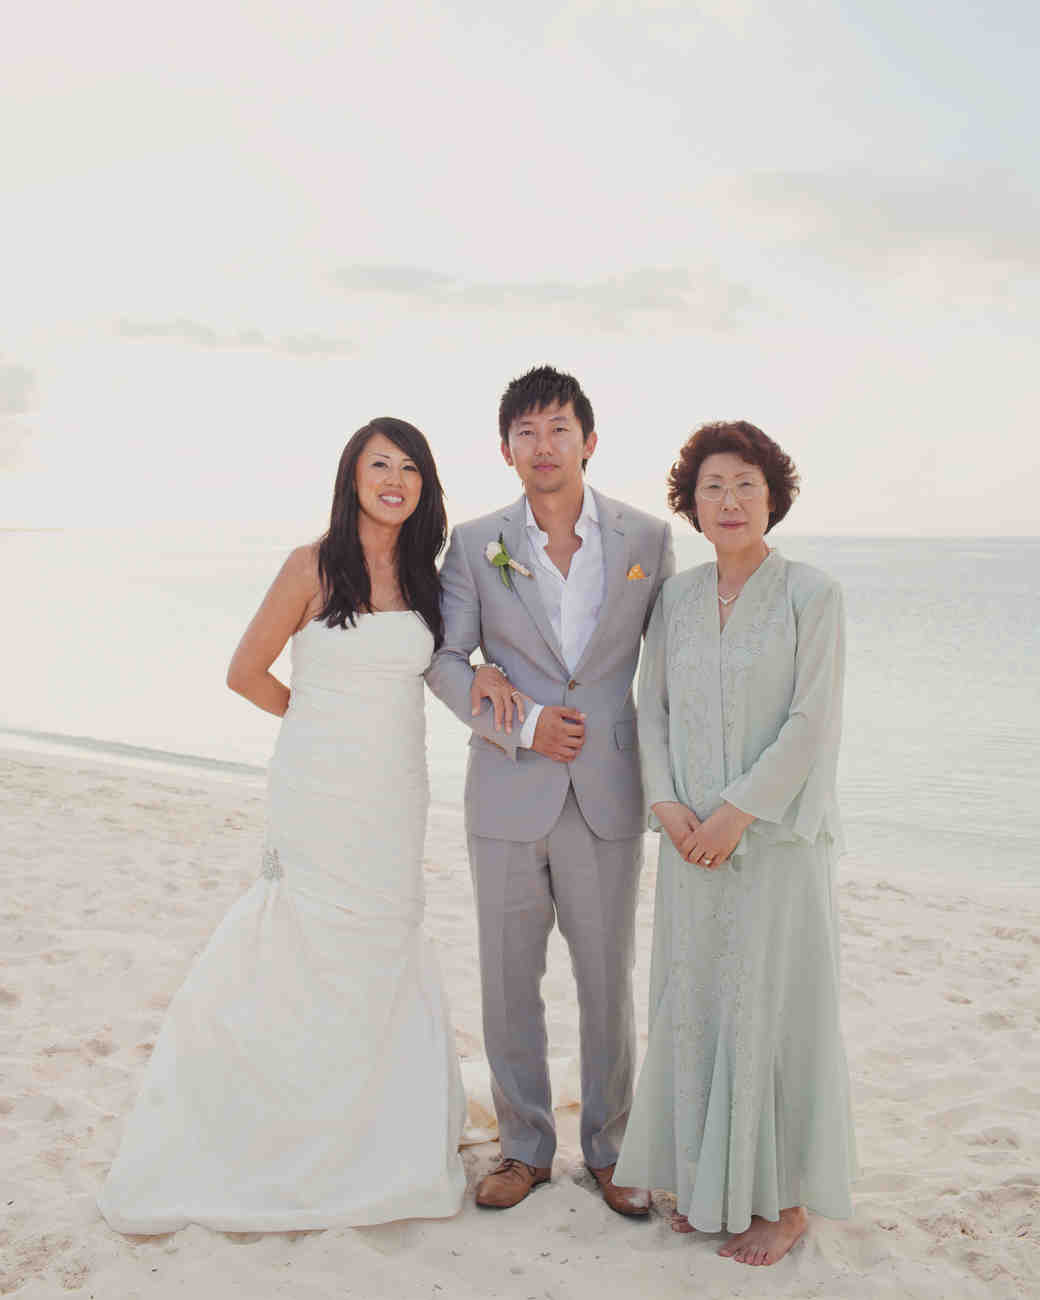 real-weddings-jessica-bobby-0811-1445.jpg